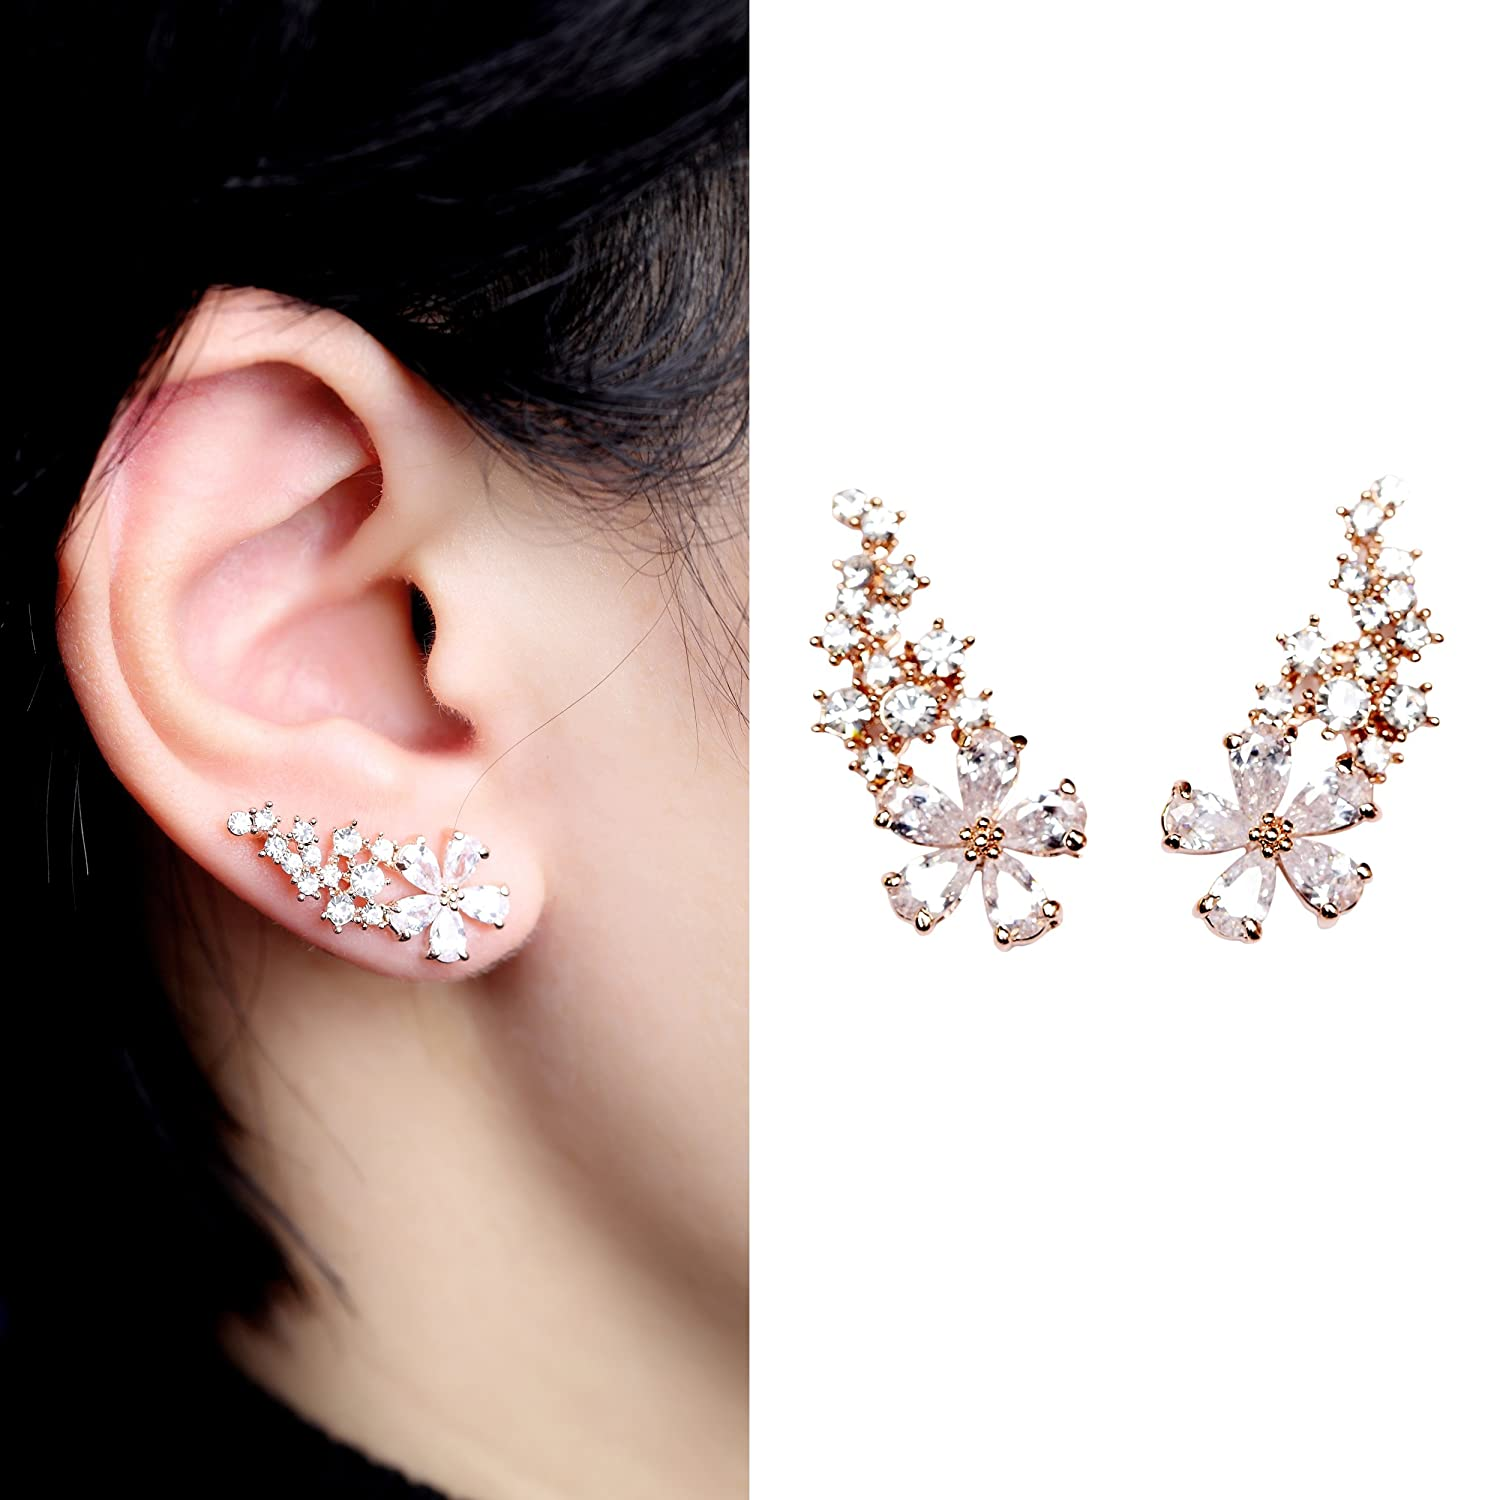 earrings gold ear rhinestone stud leaf must have girl mapel cuff okajewelry earring show fashions zoom single wrap